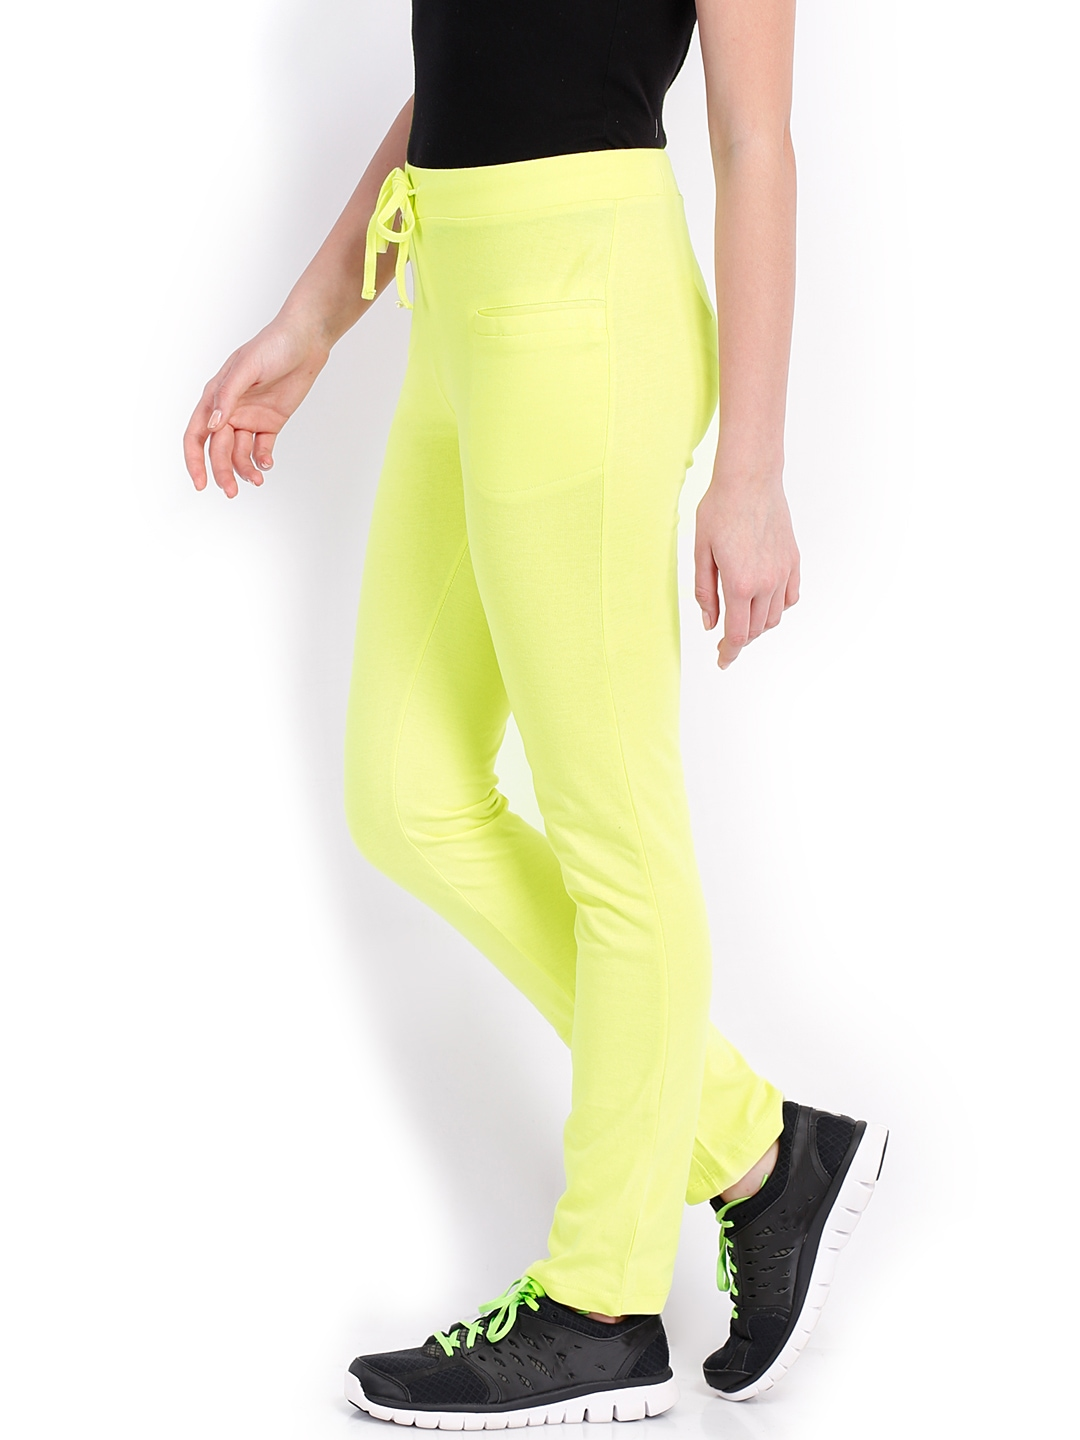 Amazing Fin Lilac Amp Lime Green Contrast Capri Yoga Pants  Women  Zulily